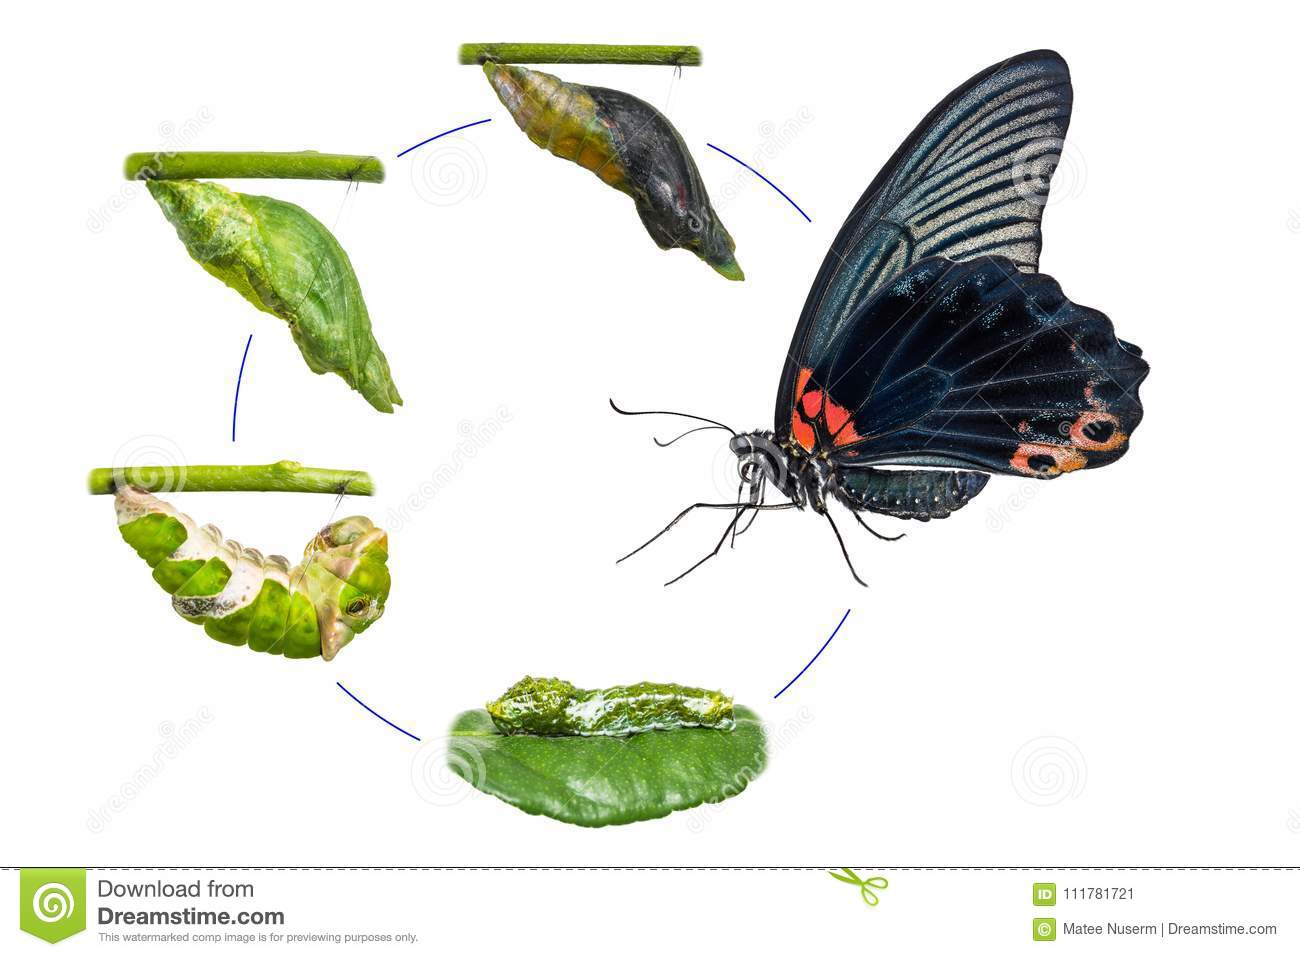 Male Great Mormon Papilio memnon butterfly life cycle